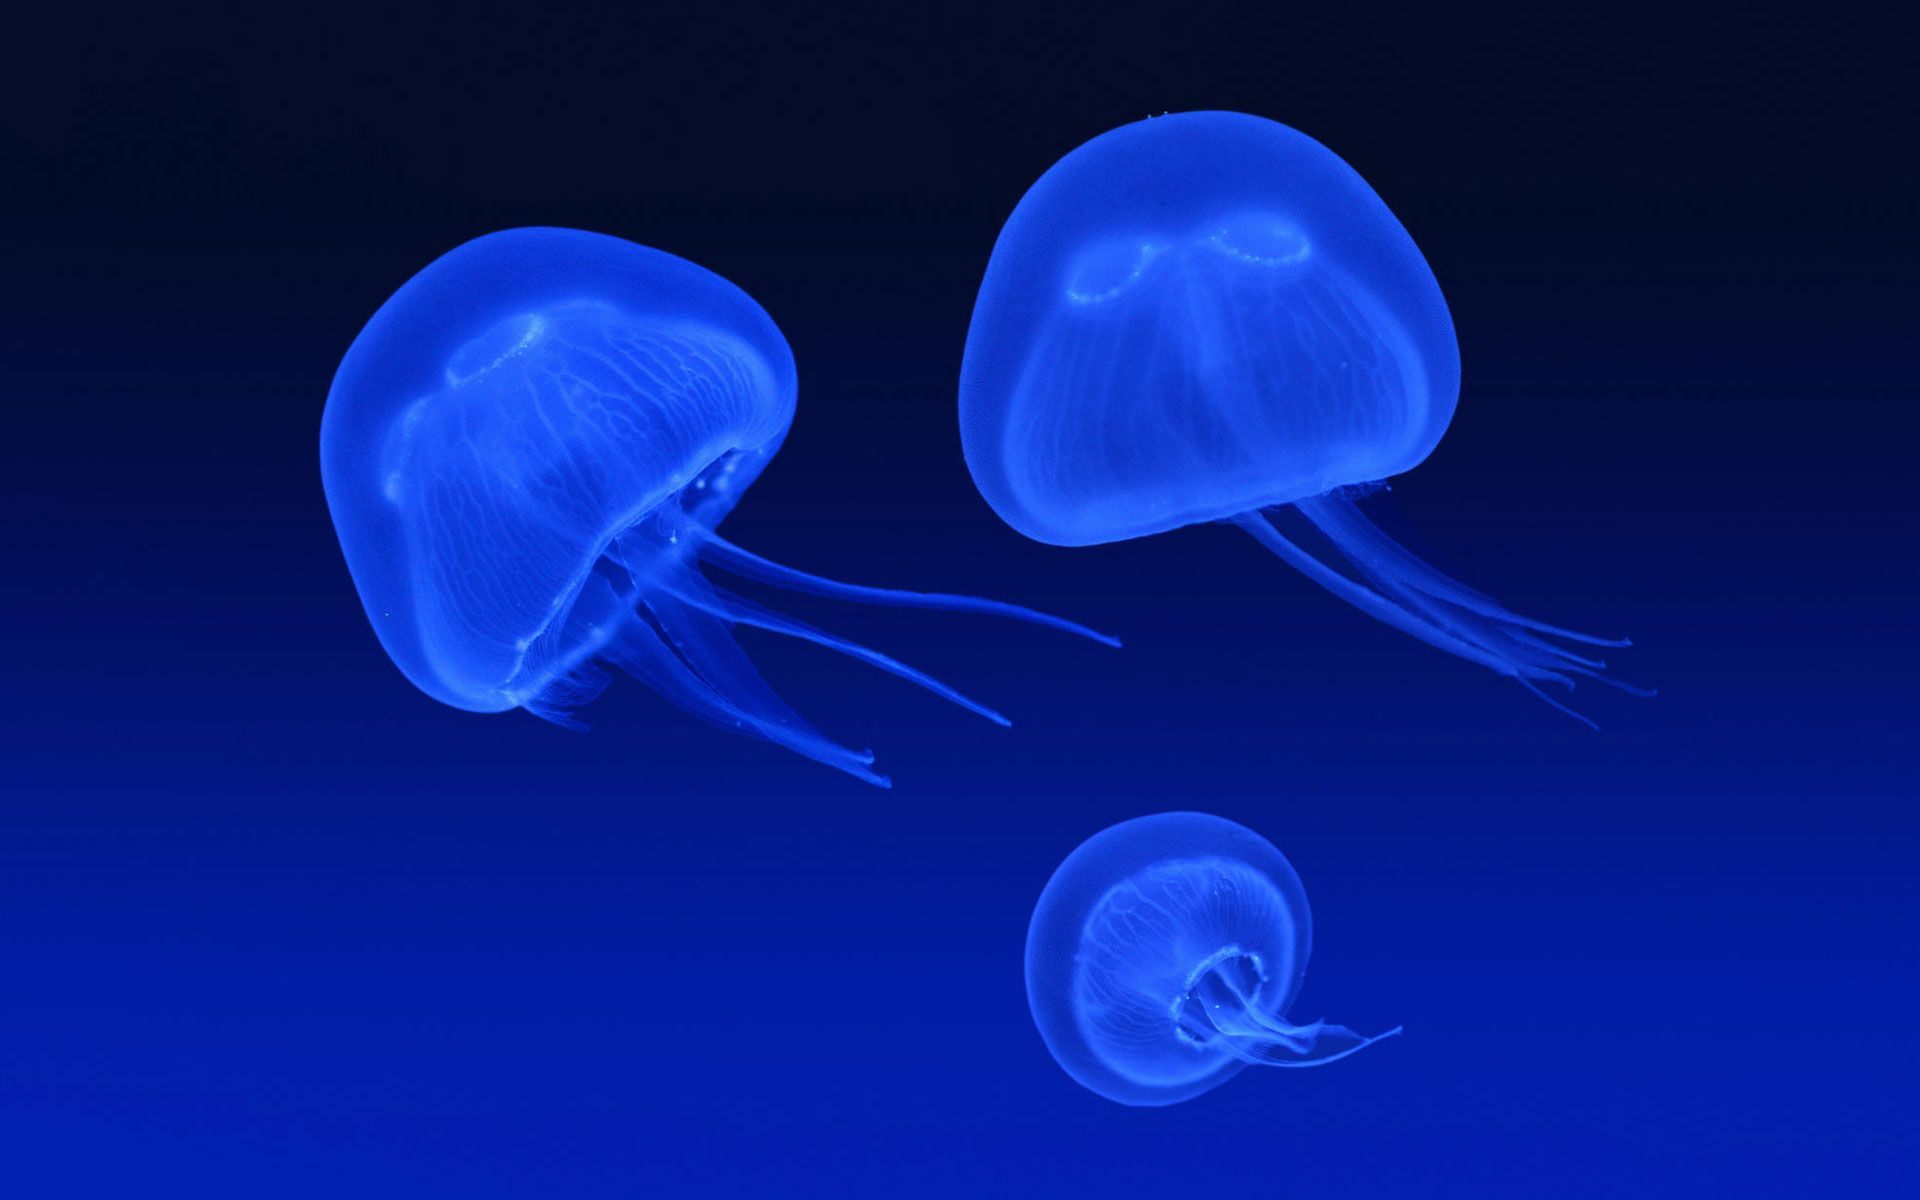 Moon Jellyfish 4k Ultra Hd Wallpaper Floating Jellyfish